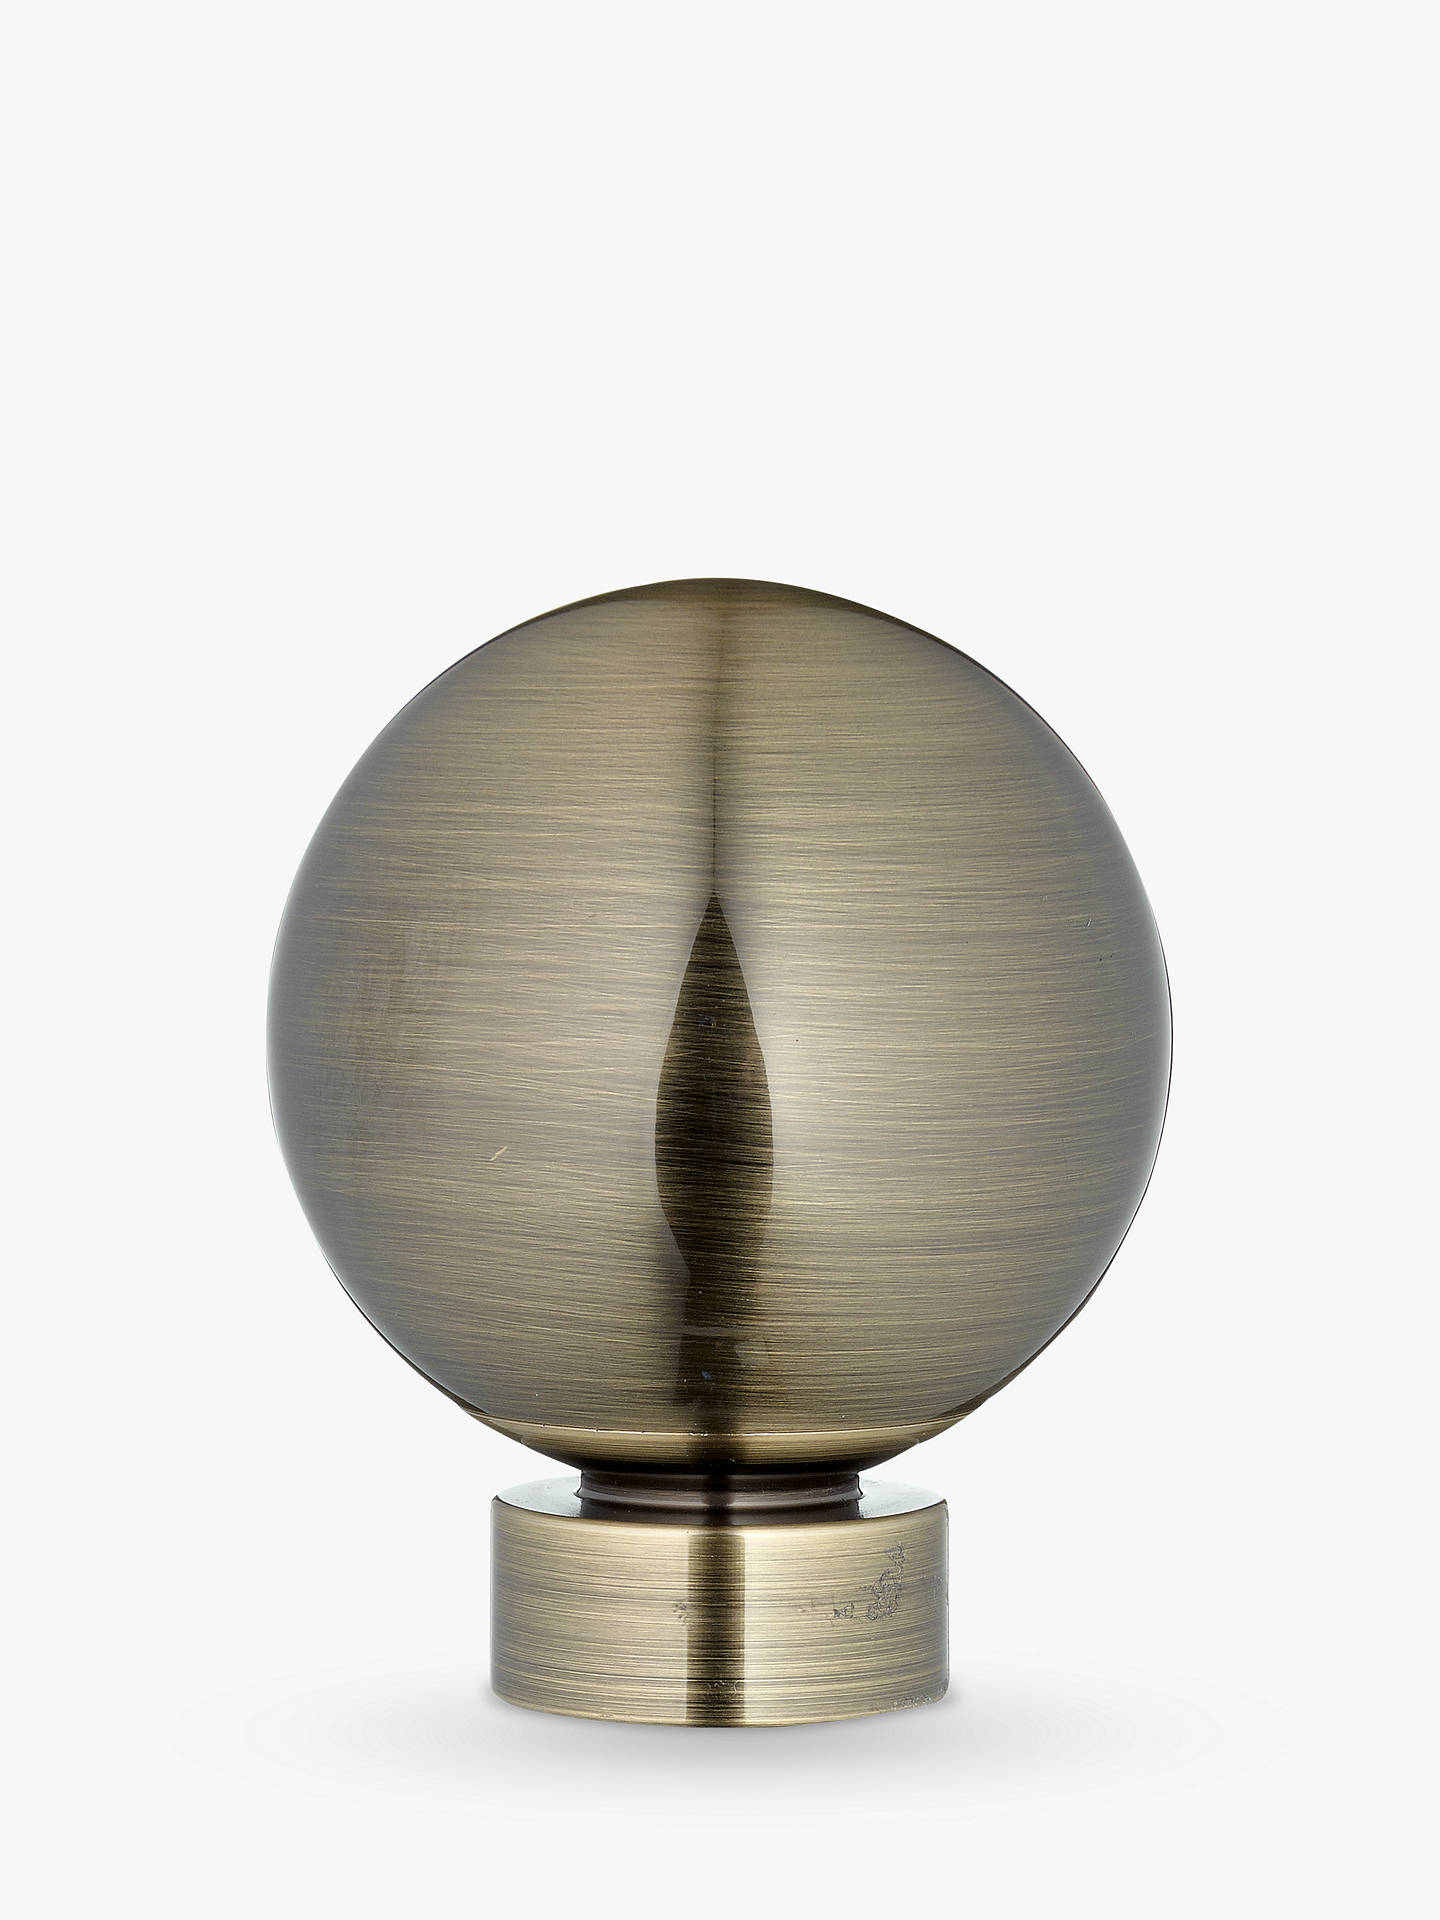 BuyJohn Lewis & Partners Antique Brass Ball Finial, Dia.28mm Online at johnlewis.com